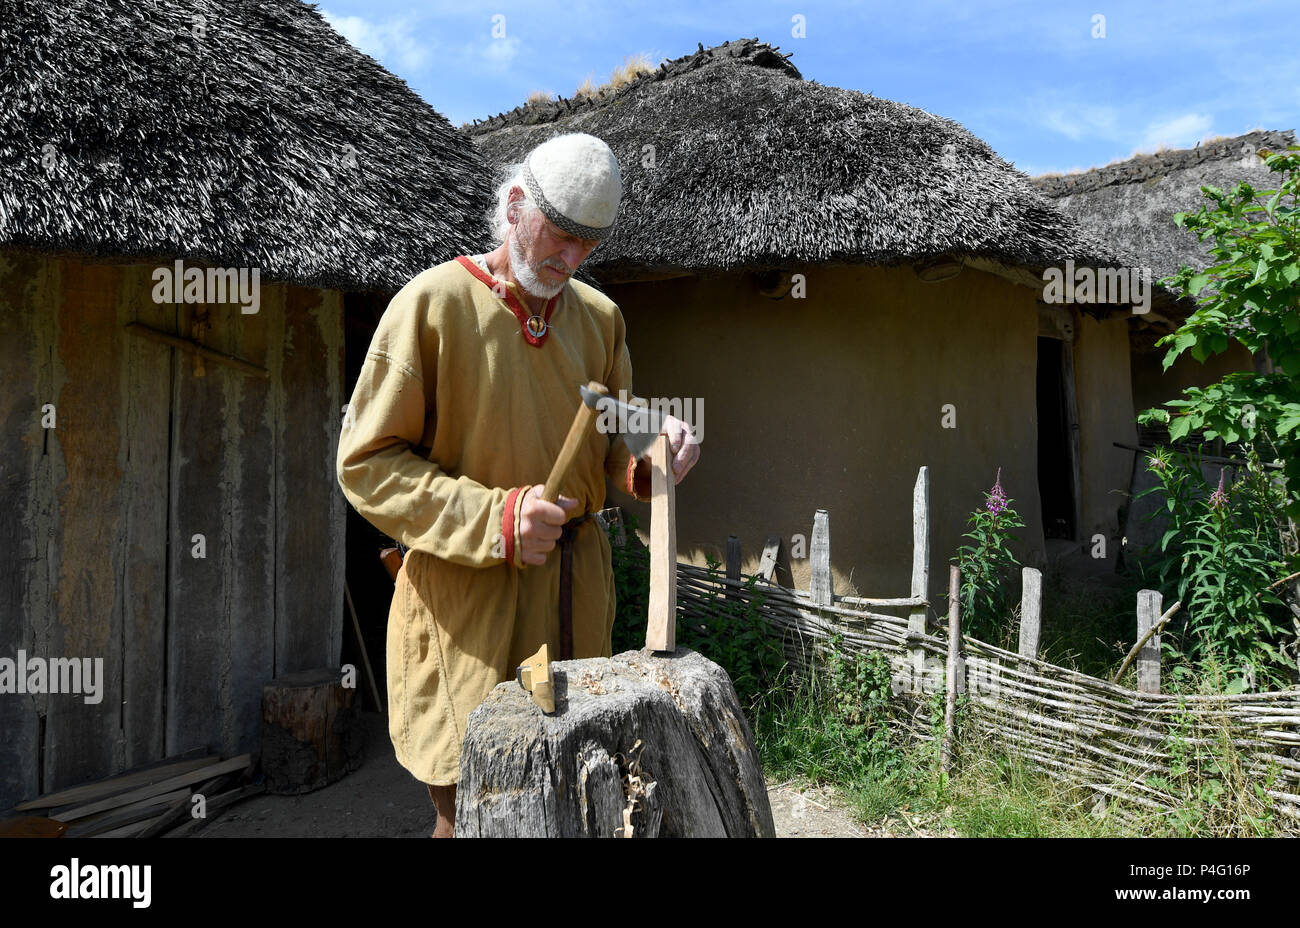 Danewerk, Germany. 19th June, 2018. A worker working in authentic Viking clothing on the site of the Viking houses in Hedeby. The UNESCO world heritage committee will decide on the admission of new monuments to its list at a session between the 24 June and 3 July. The Viking sites Hedeby and Danevirke are Germany's applicants. Credit: Carsten Rehder/dpa/Alamy Live News - Stock Image